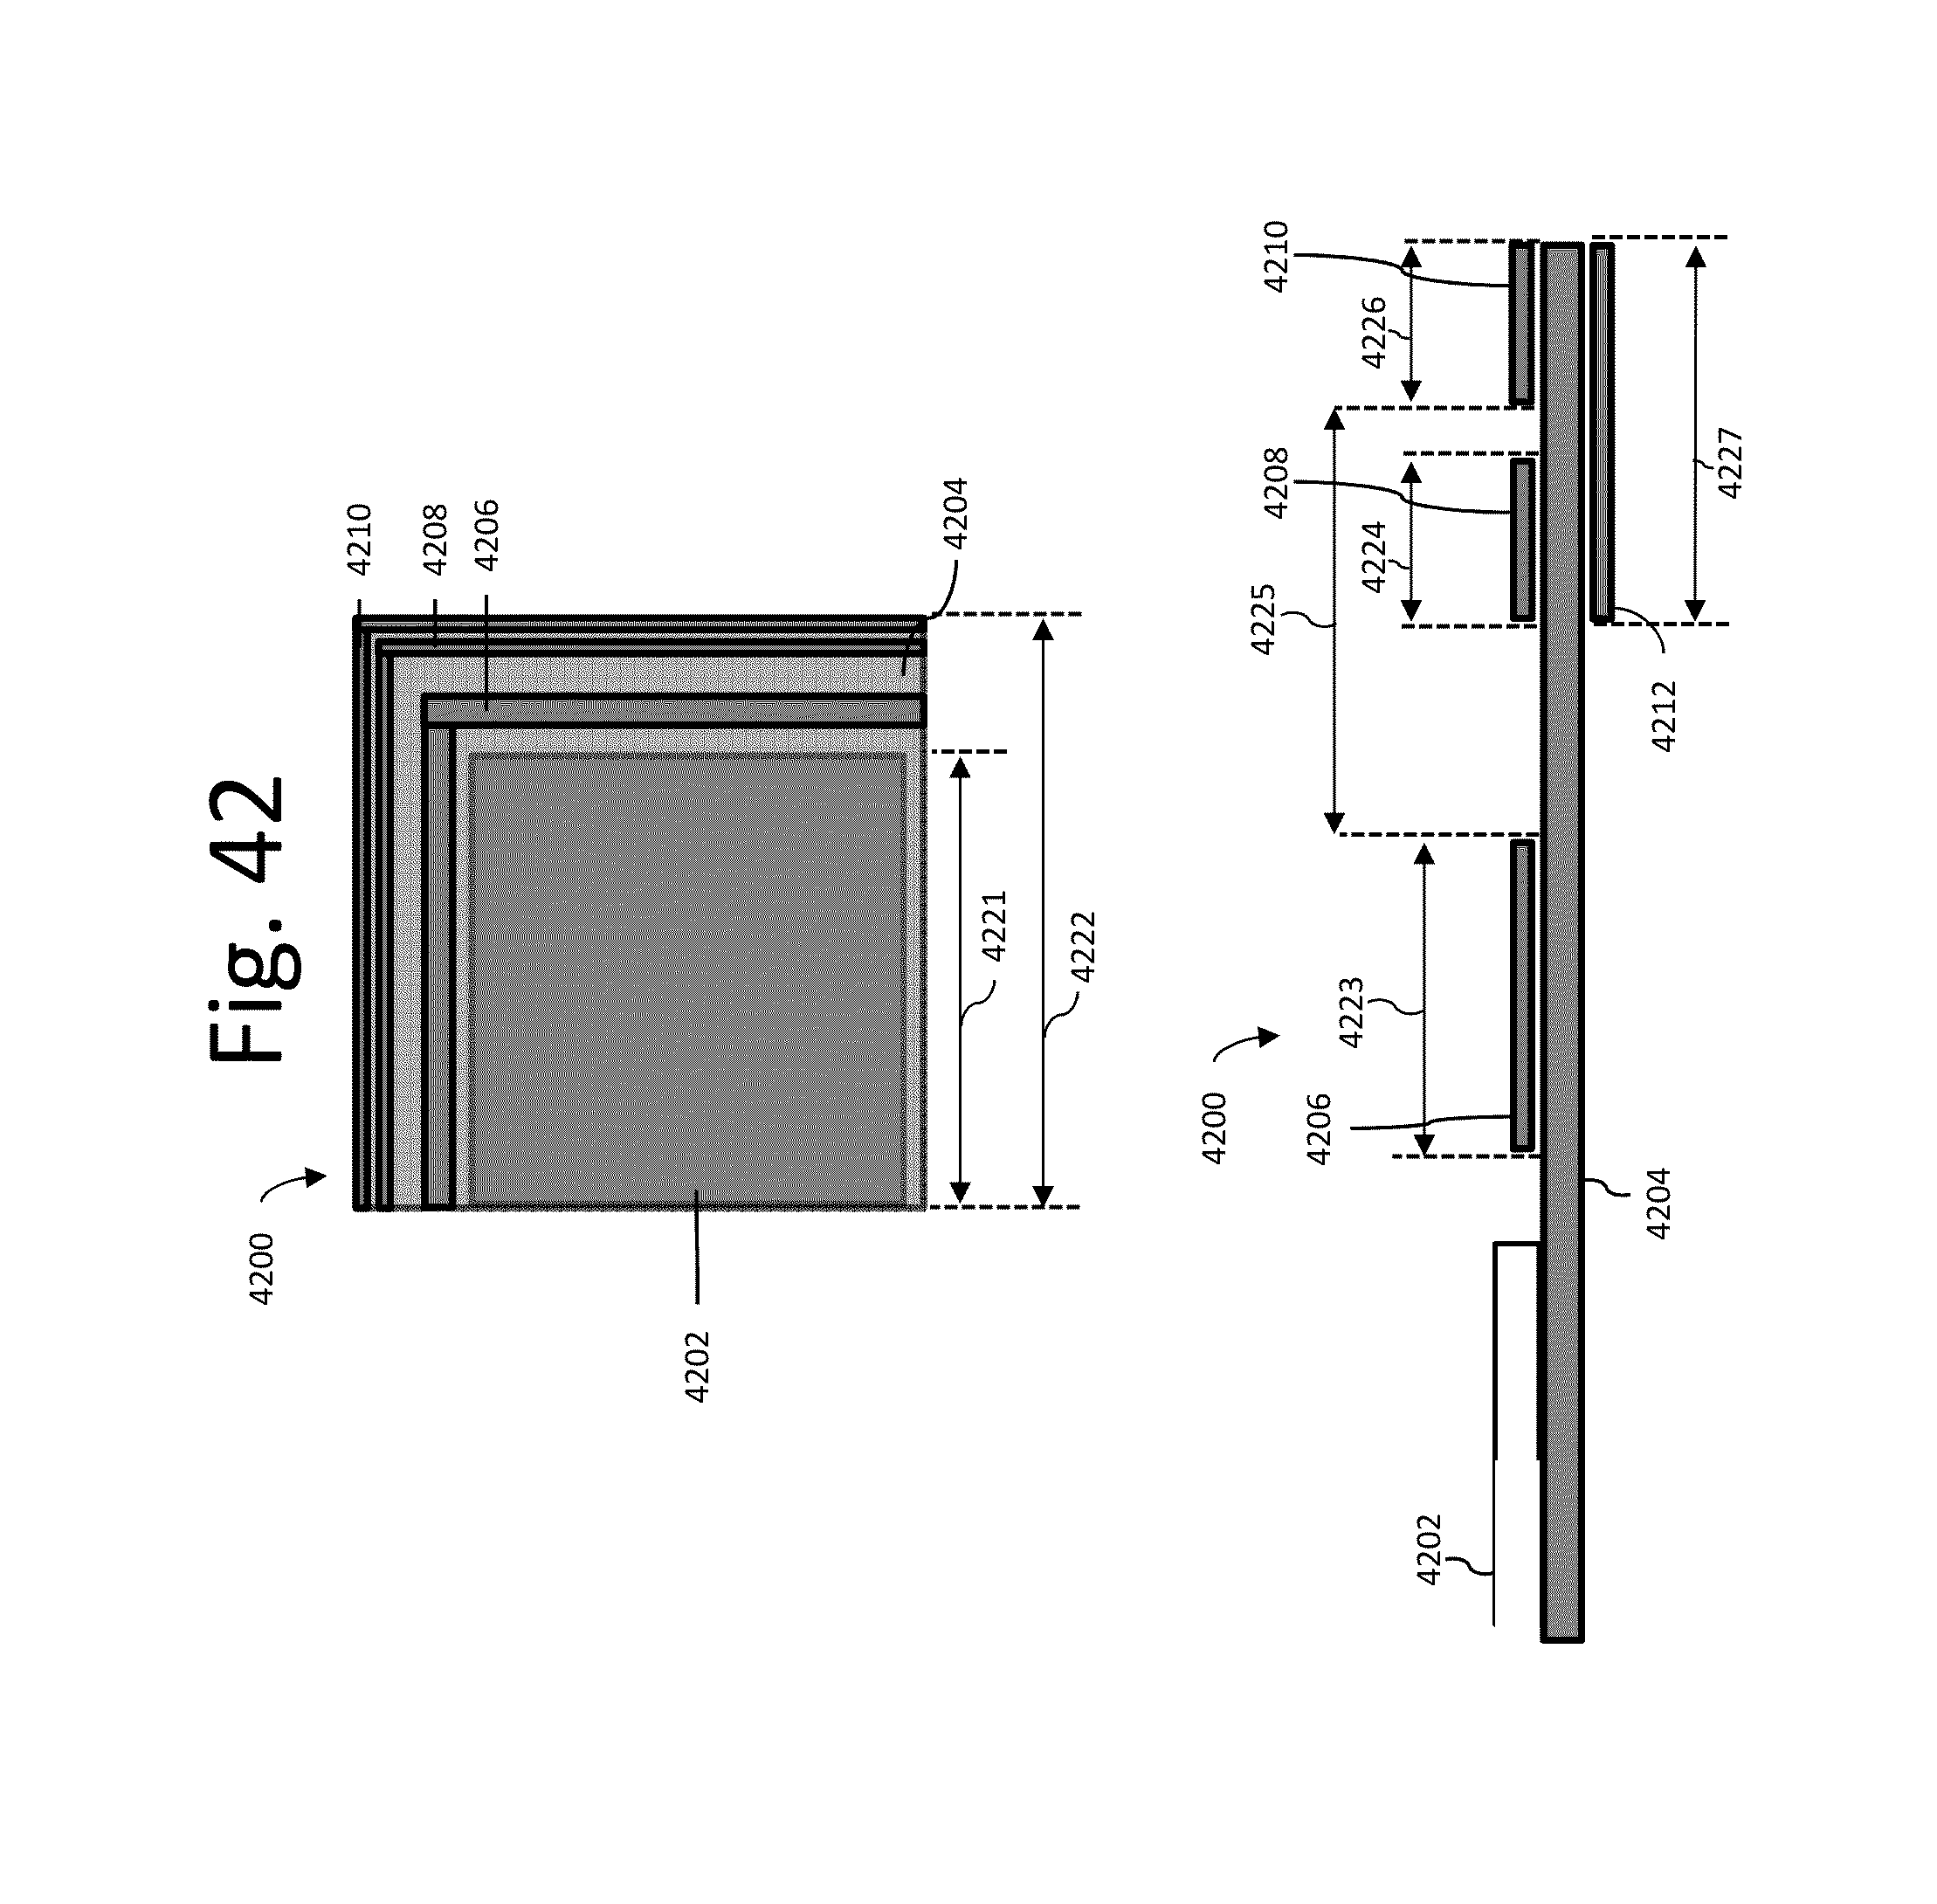 Patent Us 9404954 B2 Ceiling Wiring Schematic For Cans Images